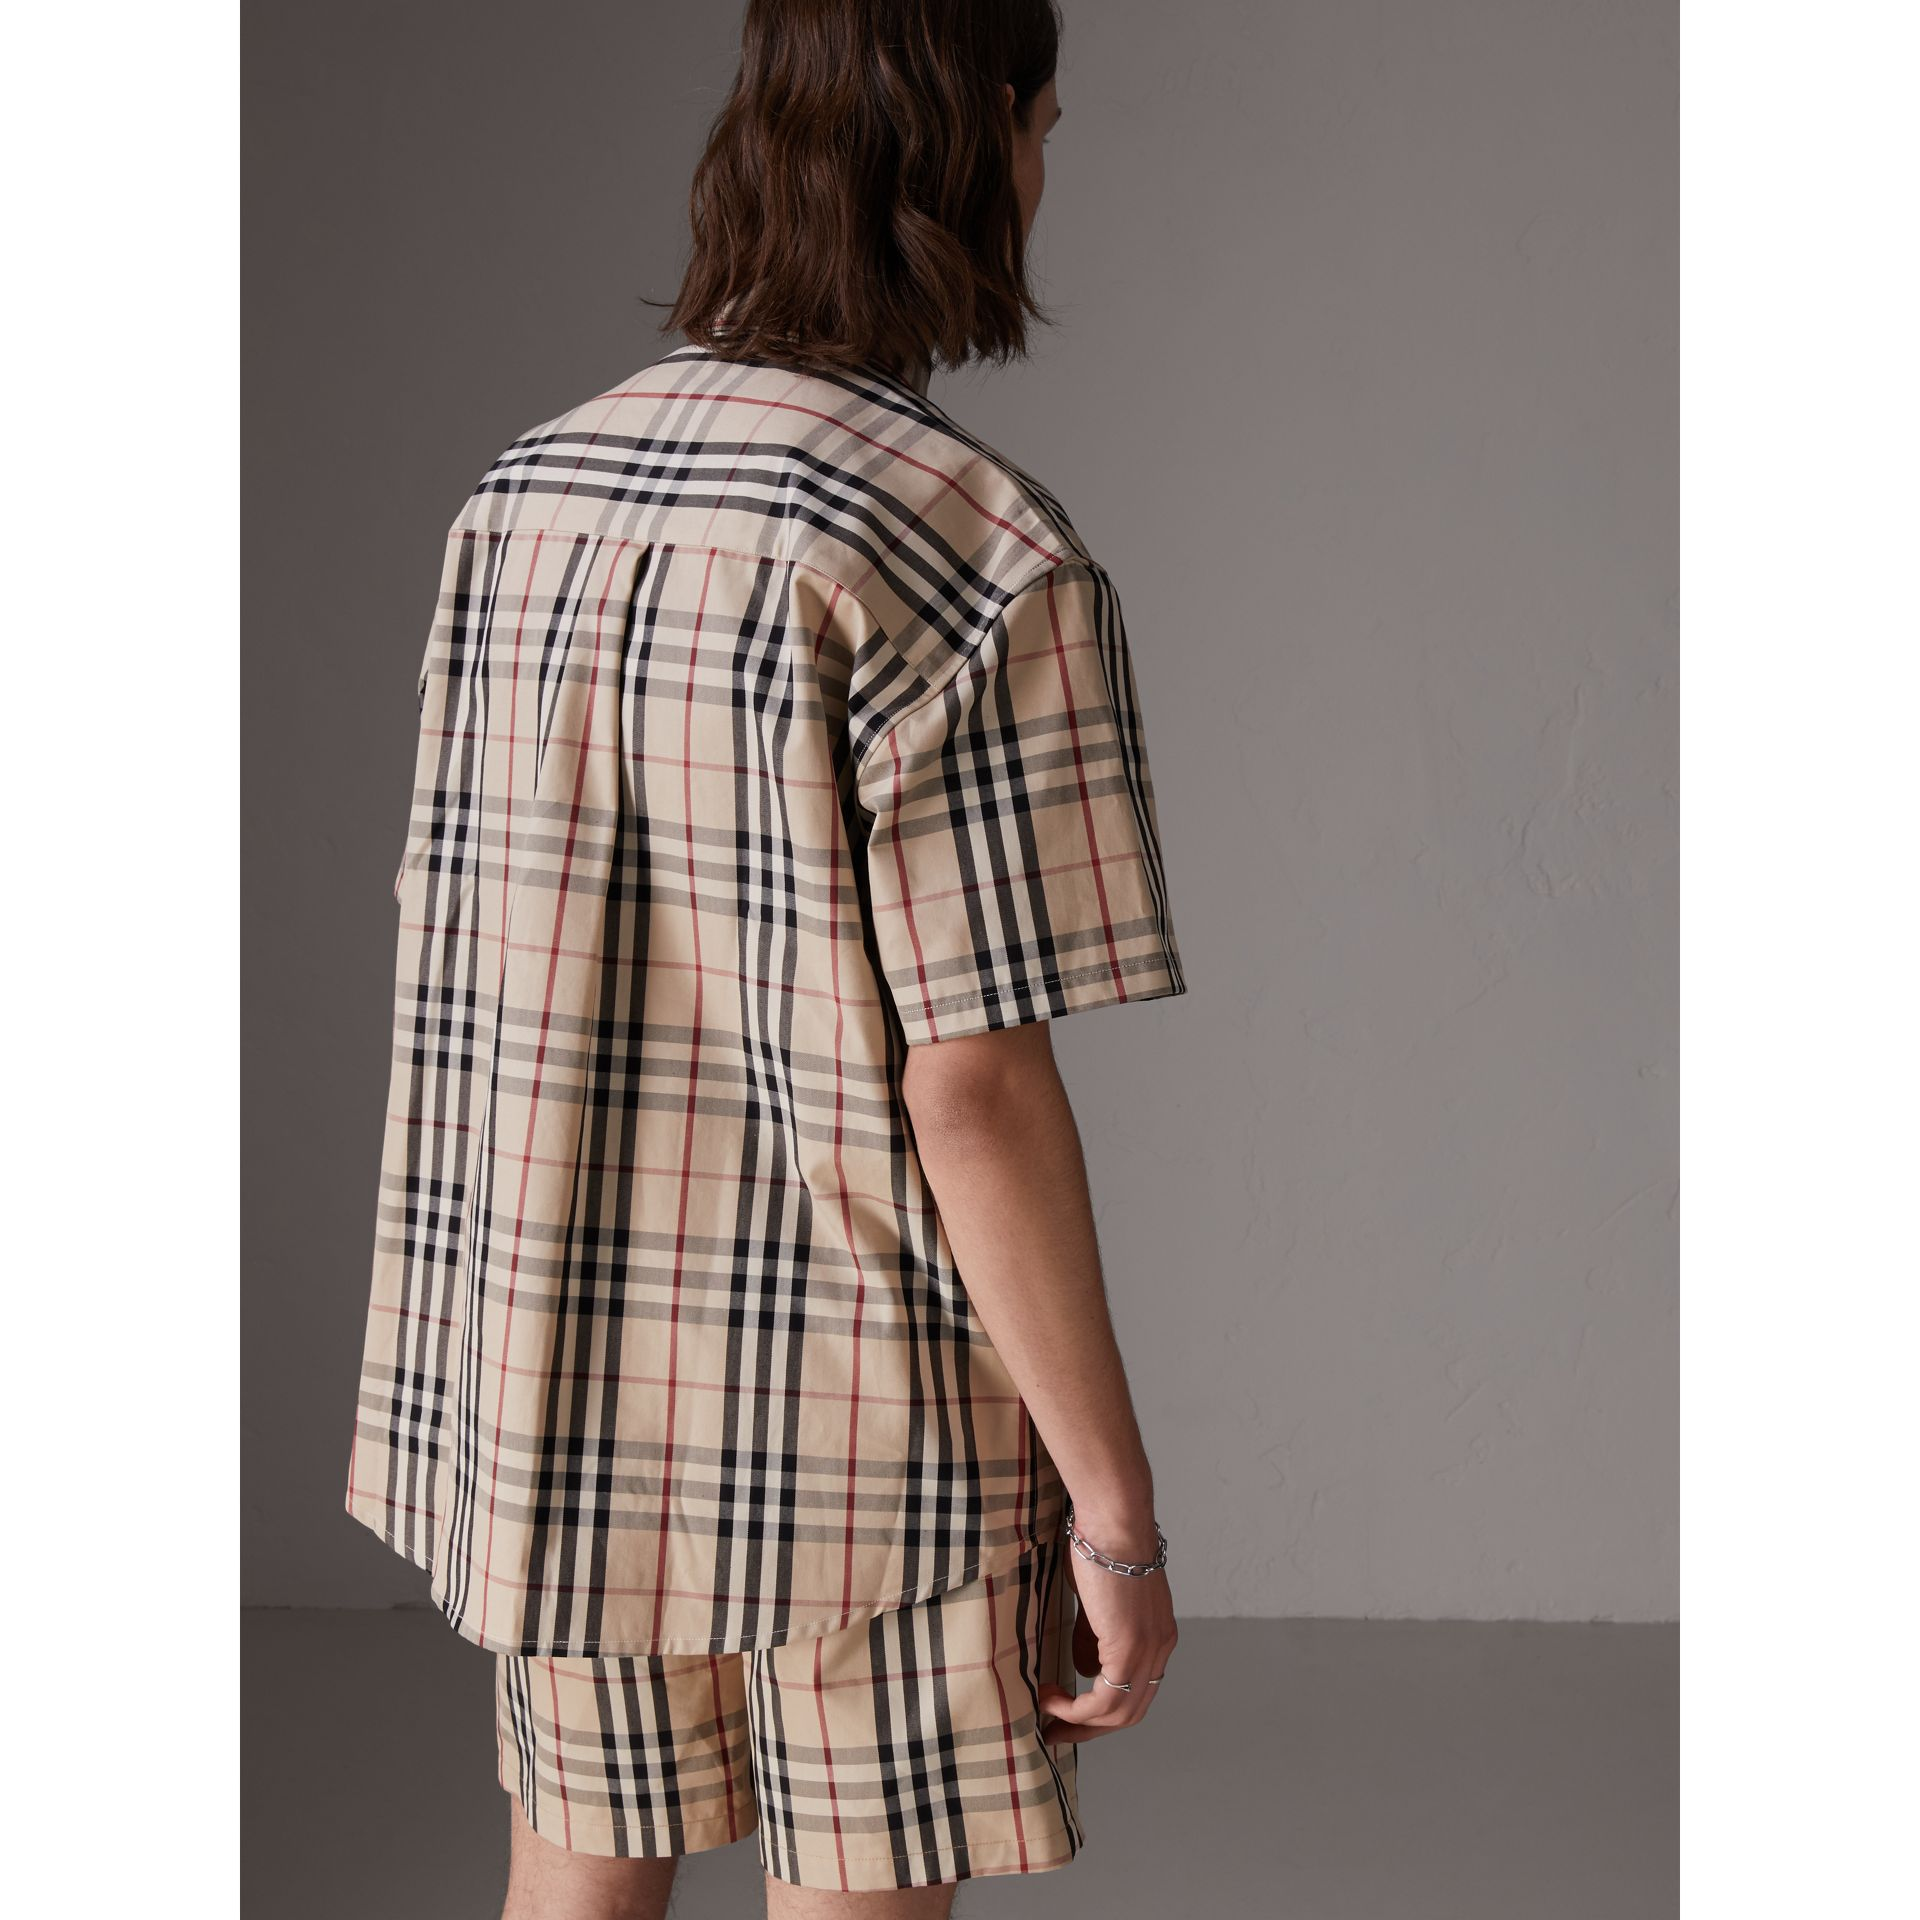 Gosha x Burberry Short-sleeve Check Shirt in Honey | Burberry United States - gallery image 5